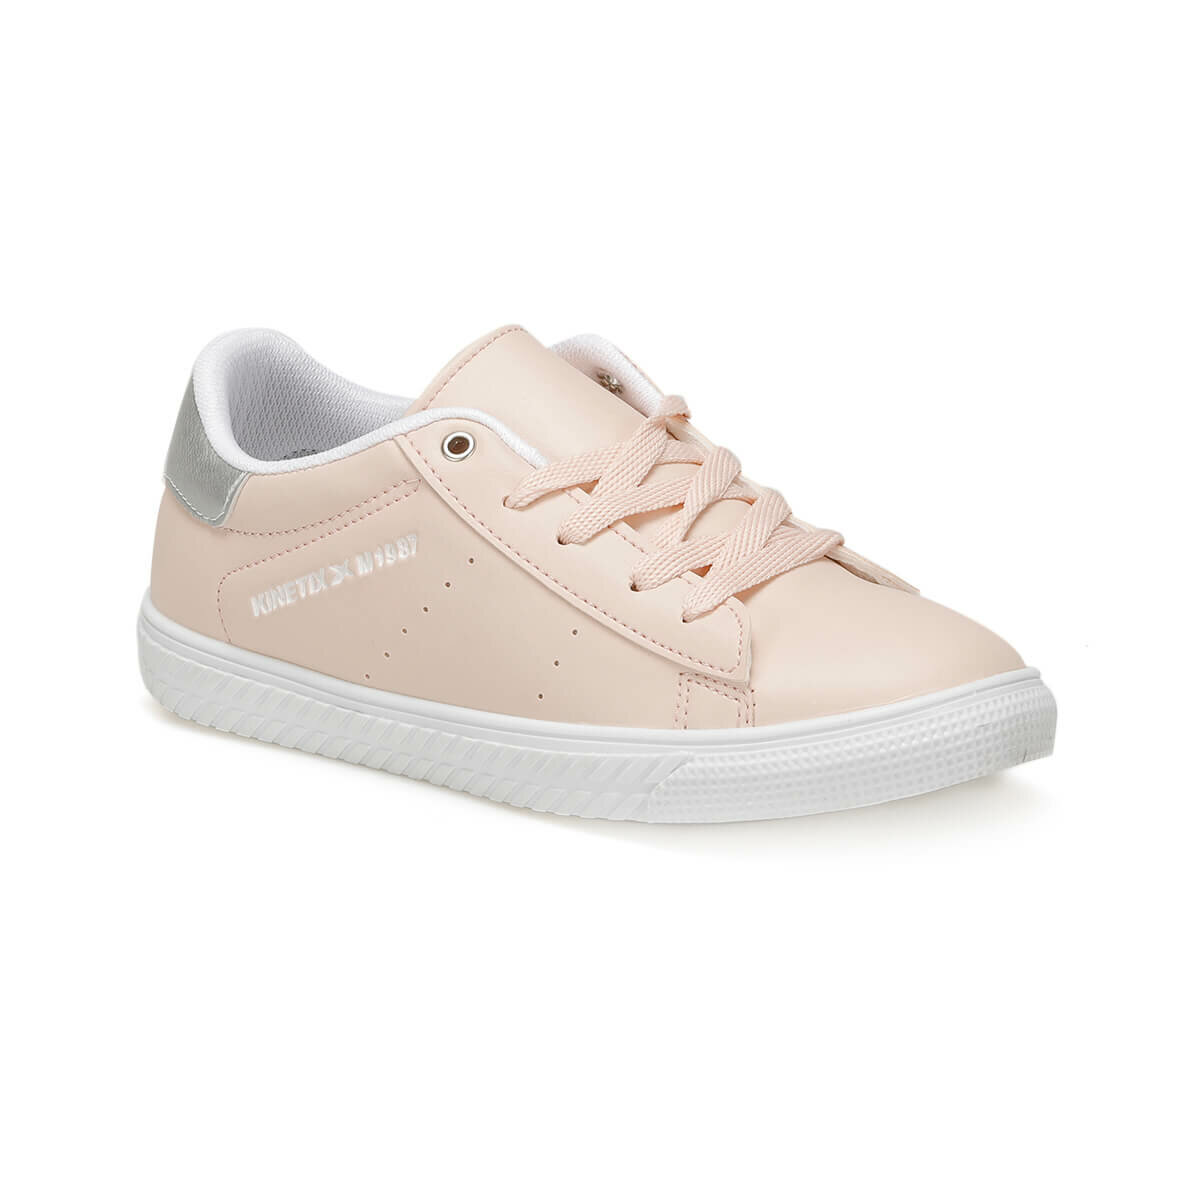 FLO WHITNEY J Light Pink Female Child Sneaker Shoes KINETIX